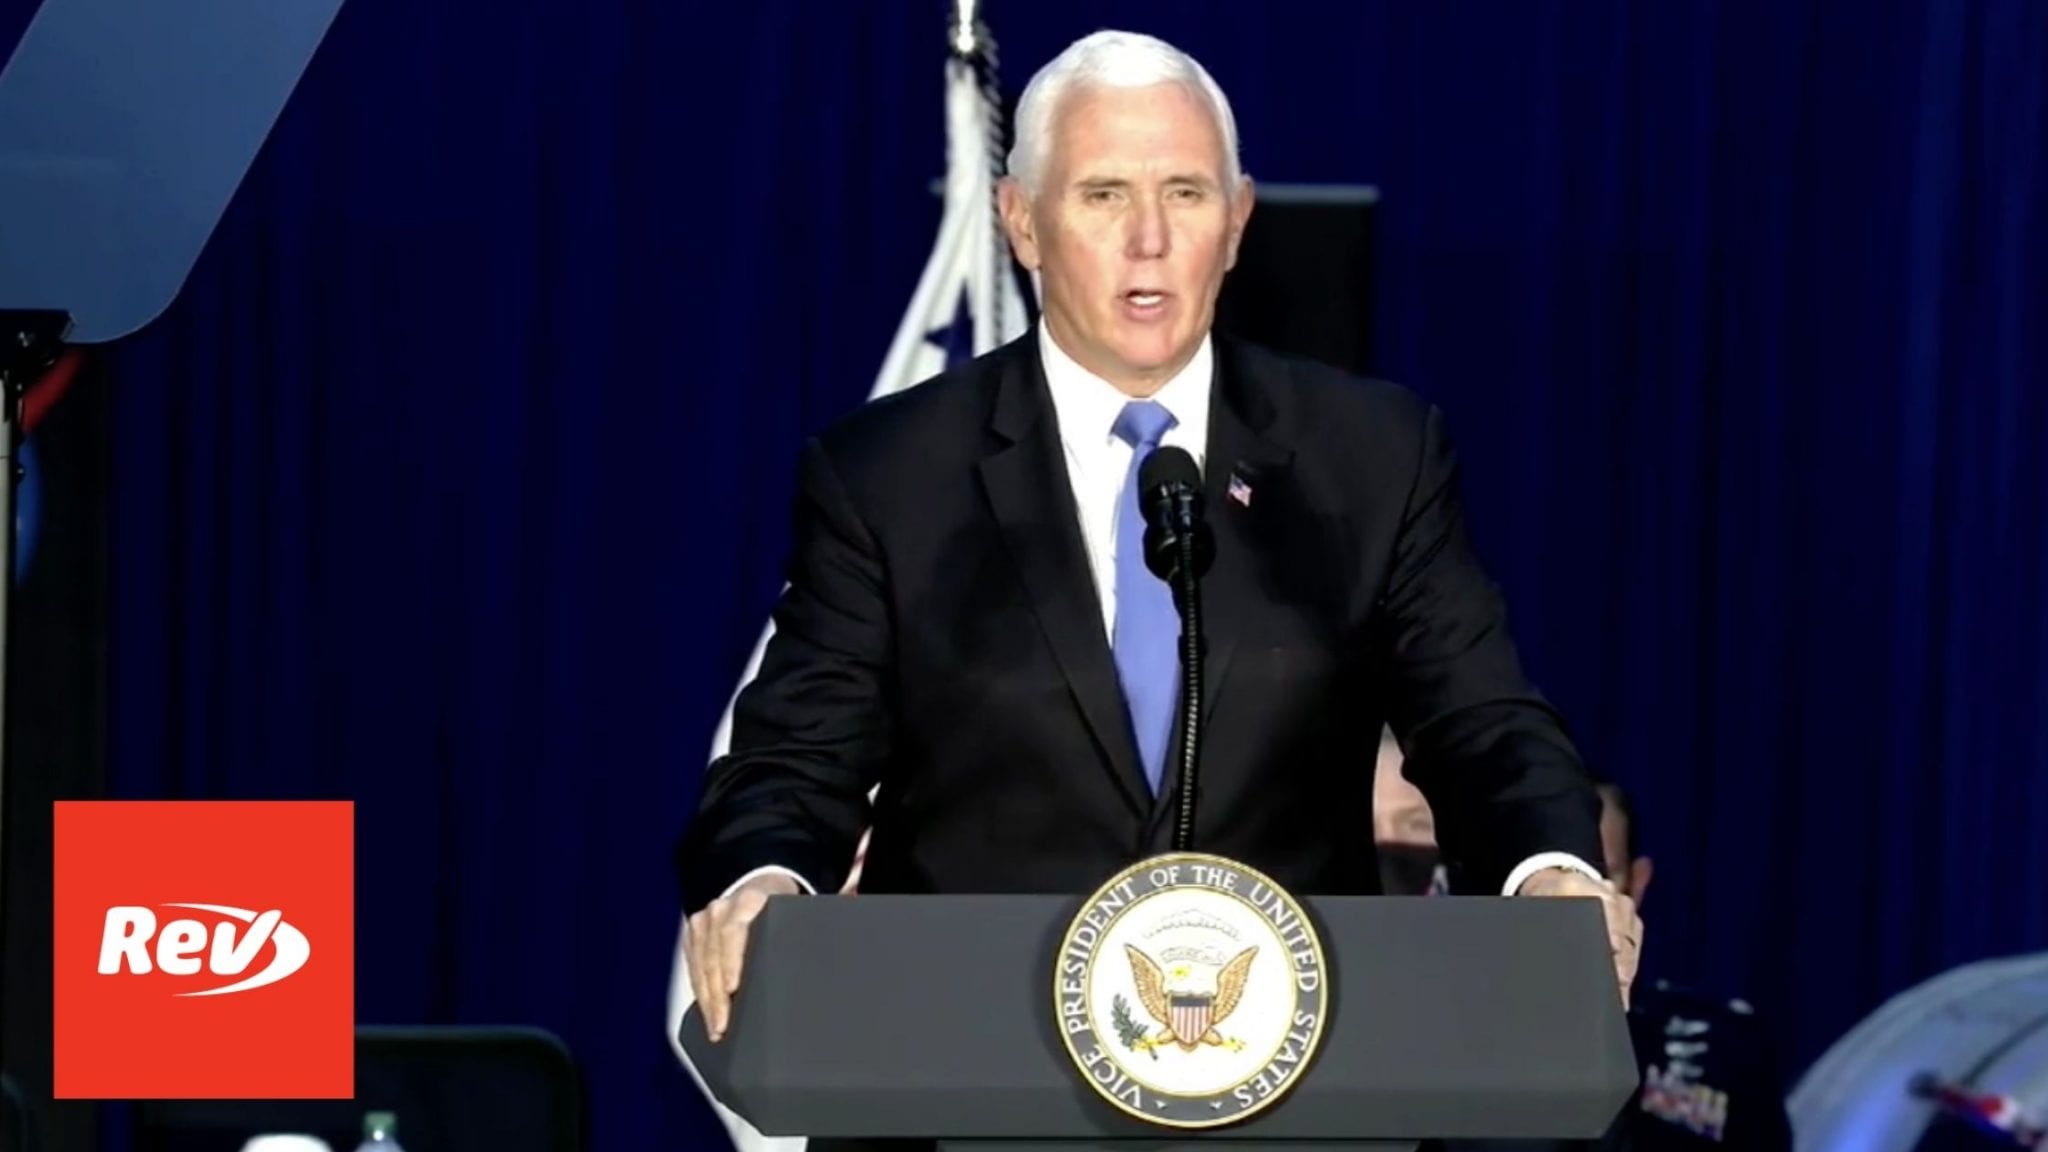 Mike Pence Chairs 8th National Space Council Meeting Transcript December 9